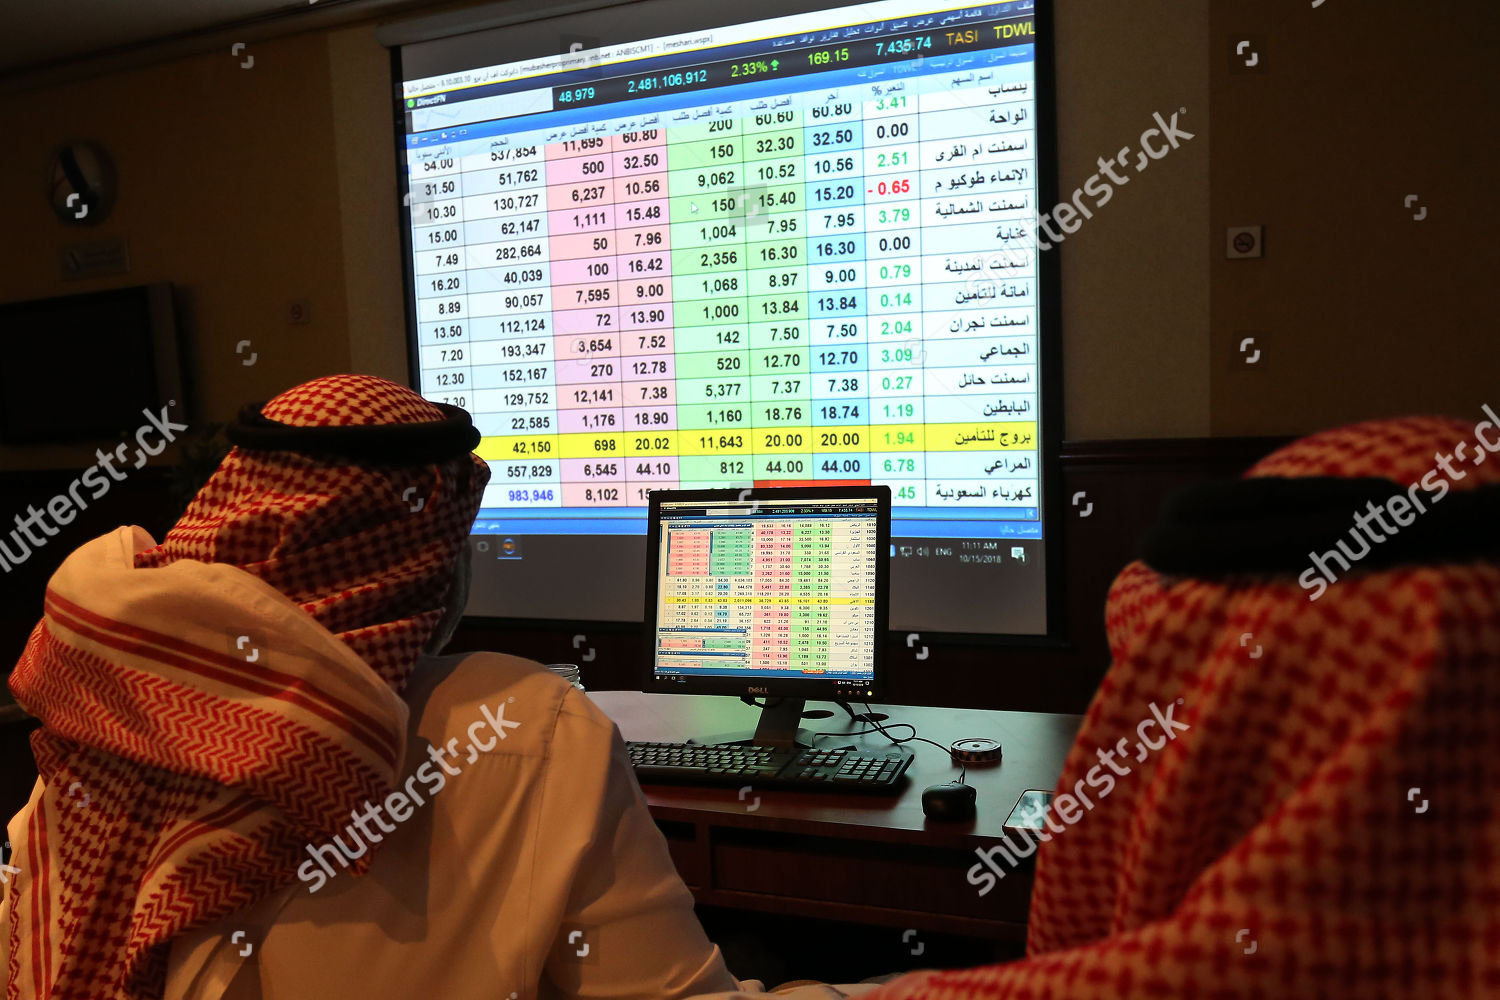 Saudi traders follow shares on screen stock Editorial Stock Photo